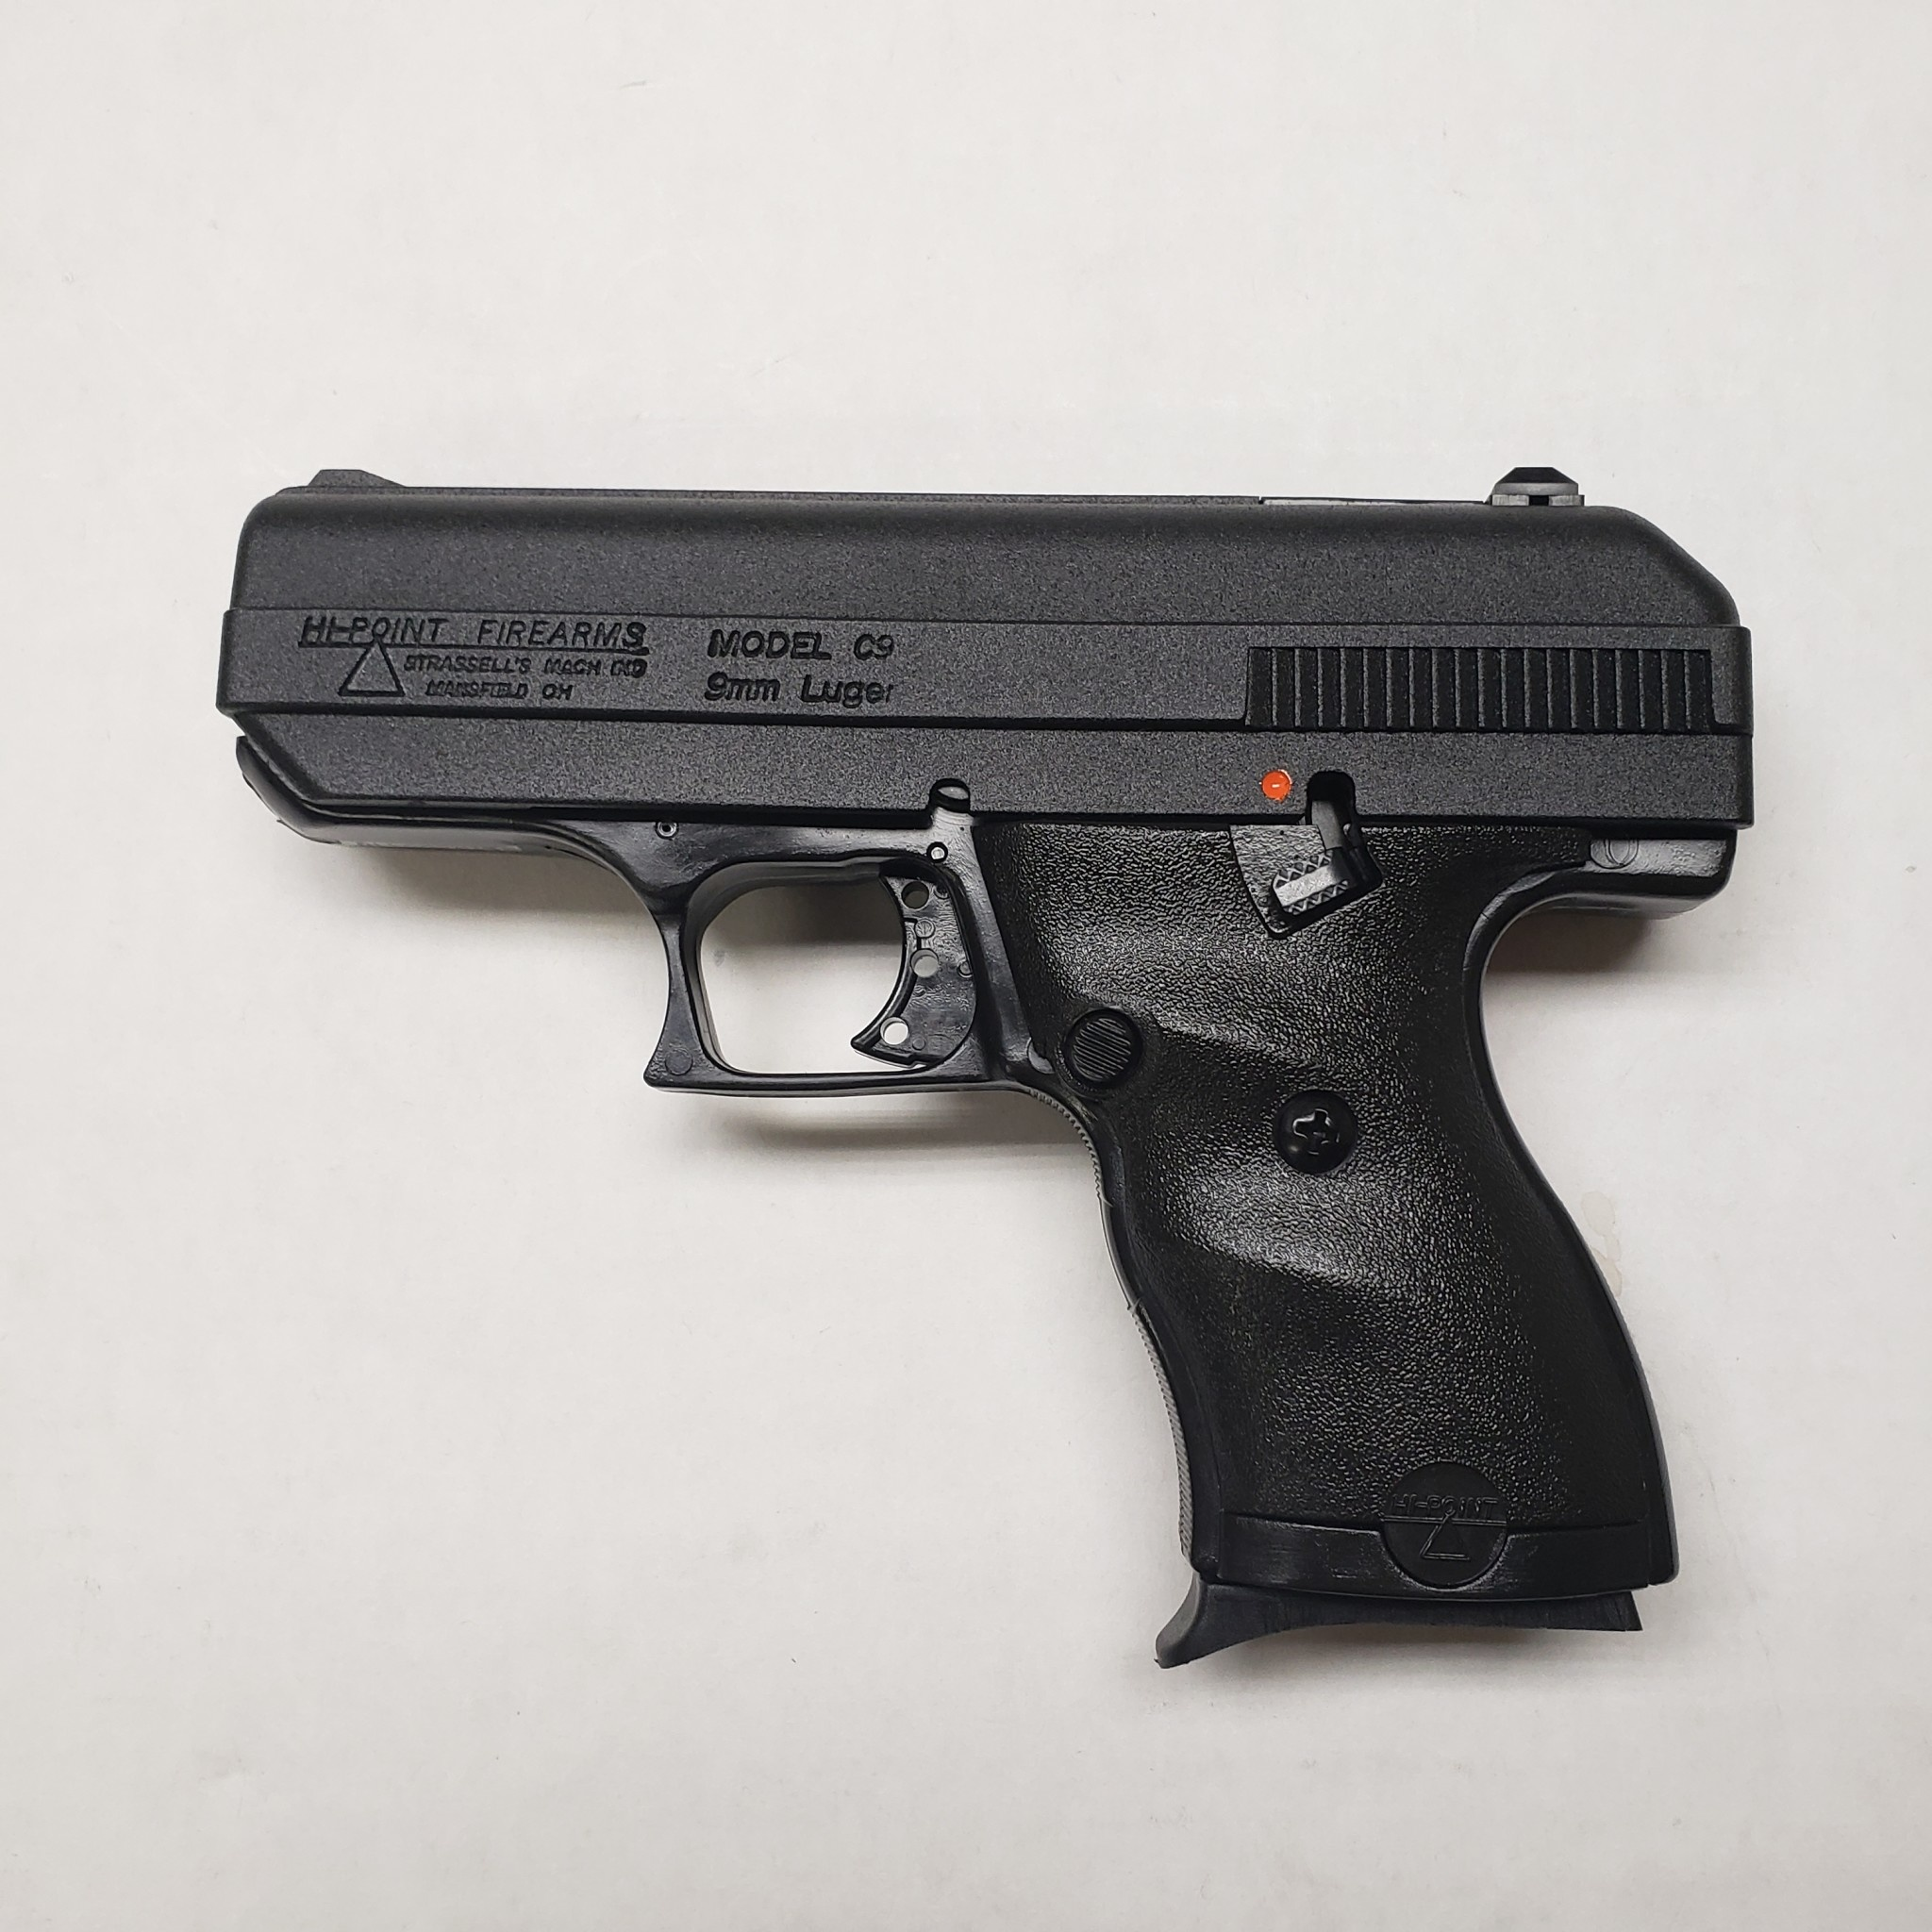 HI-Point Firearms C9 Pistol 9MM